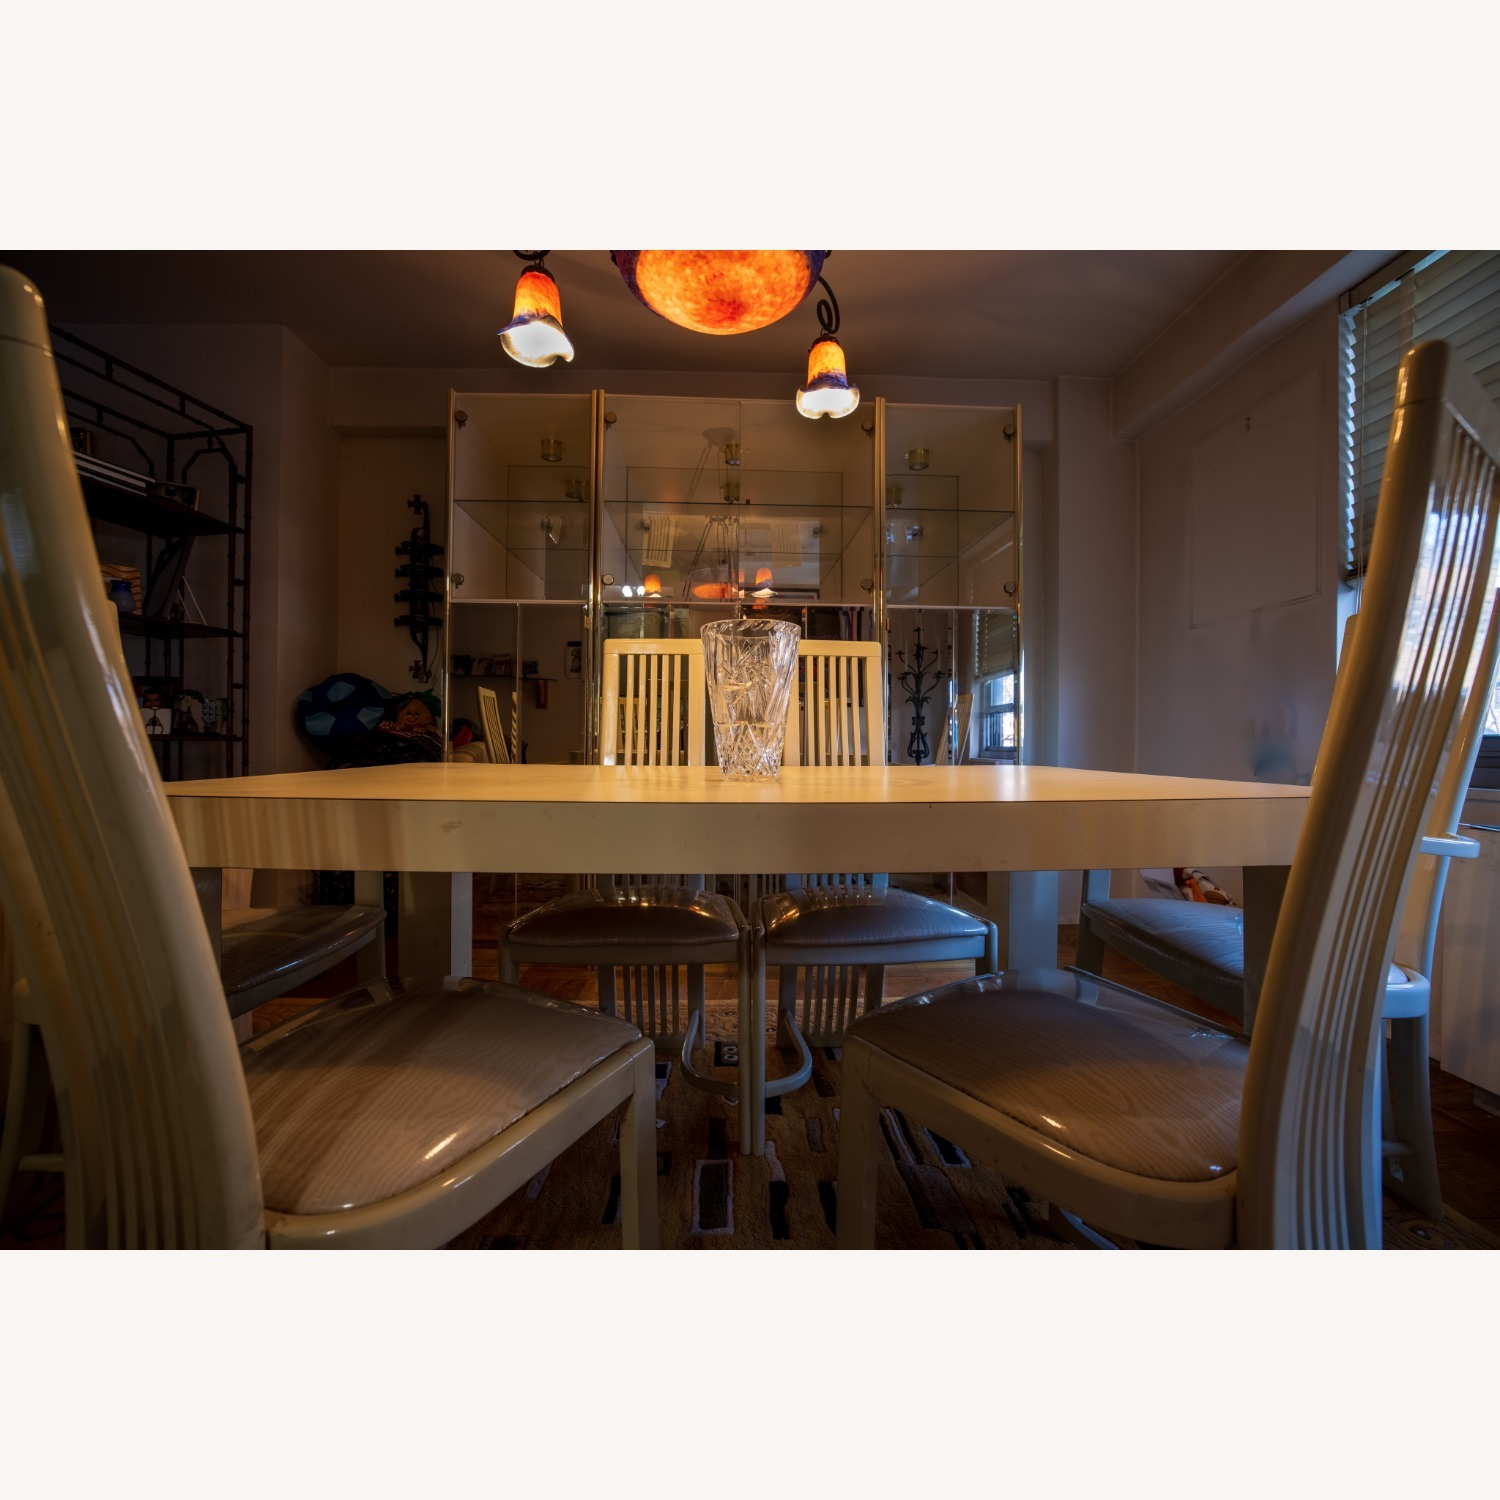 Set of White Dining Room Chairs - image-3